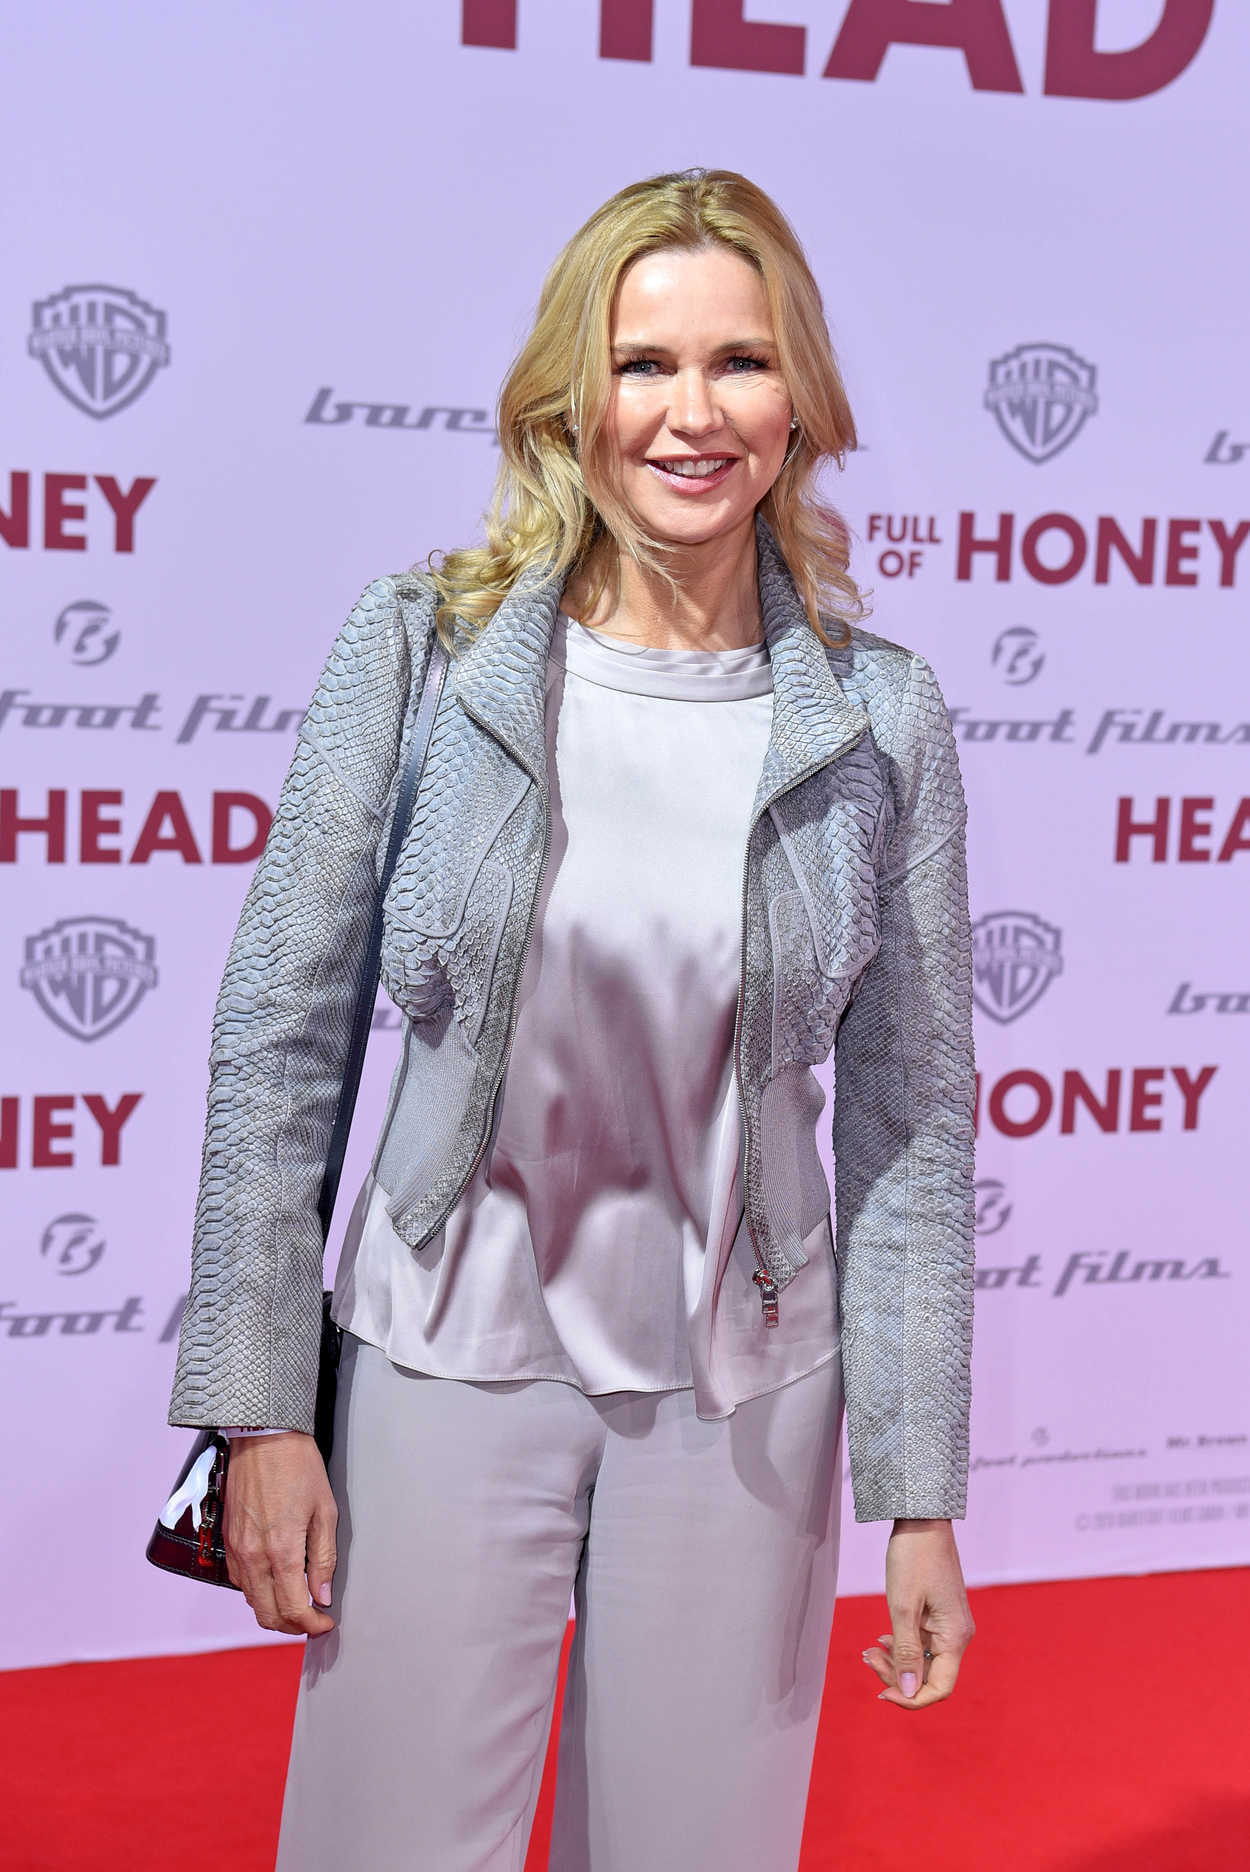 Veronica Ferres Attends the Head full of Honey Premiere at ...